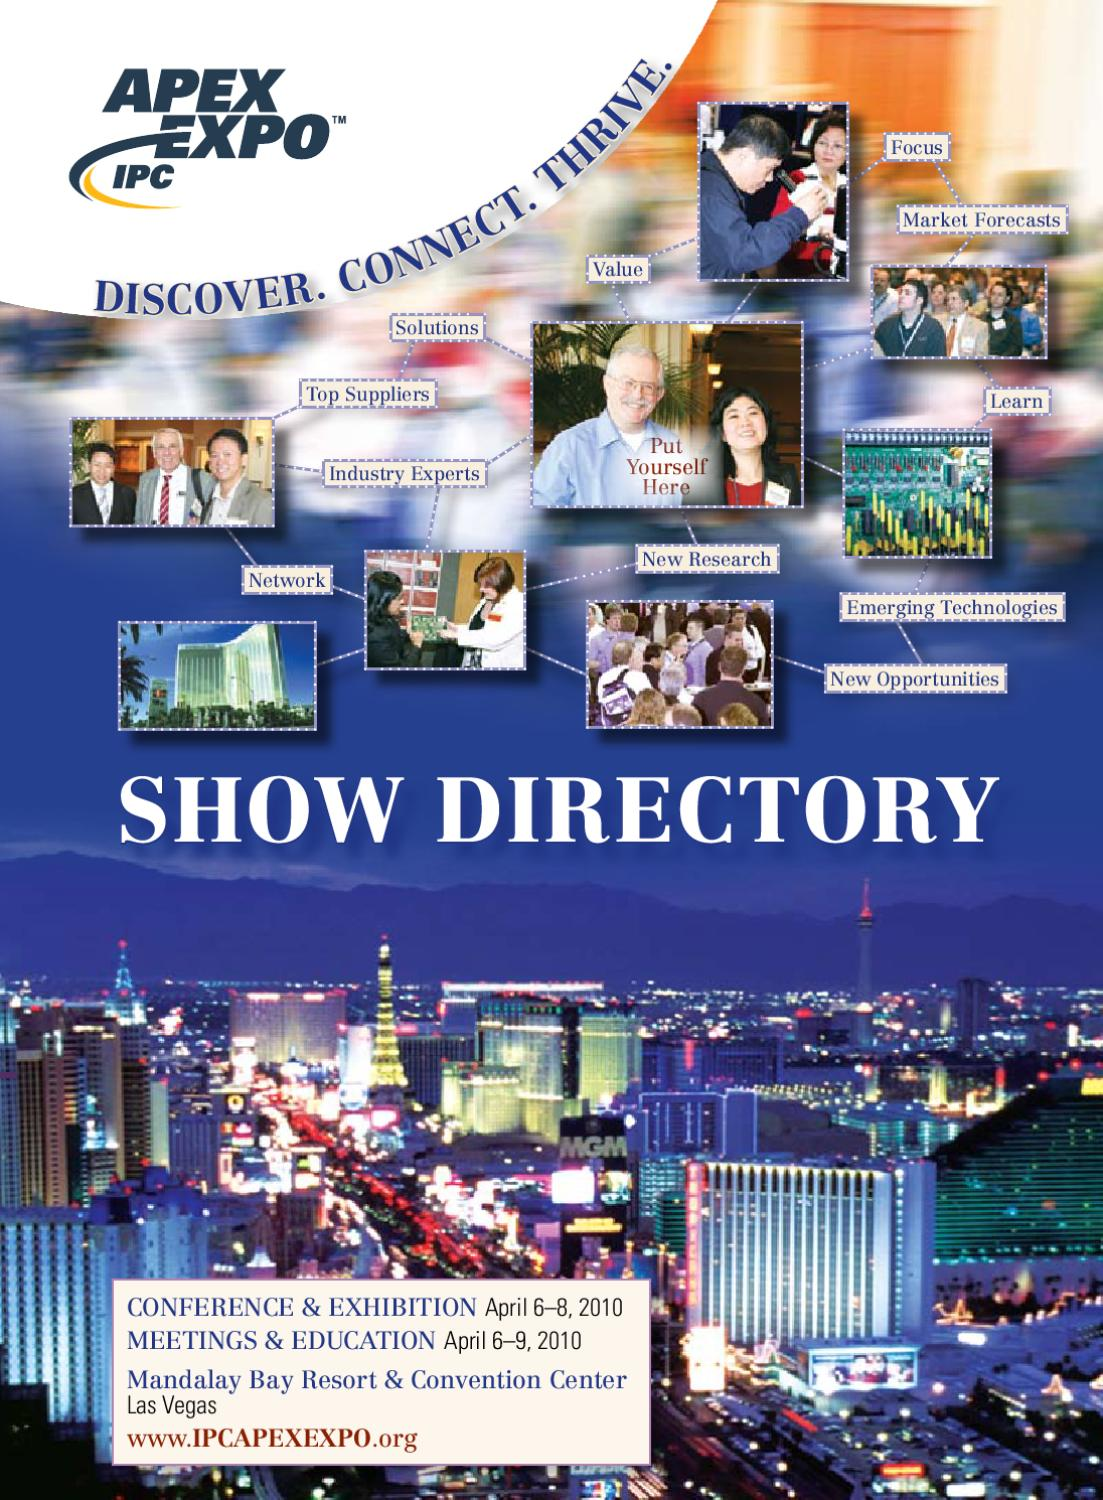 IPC APEX EXPO 2010 Show Directory by IPC - issuu